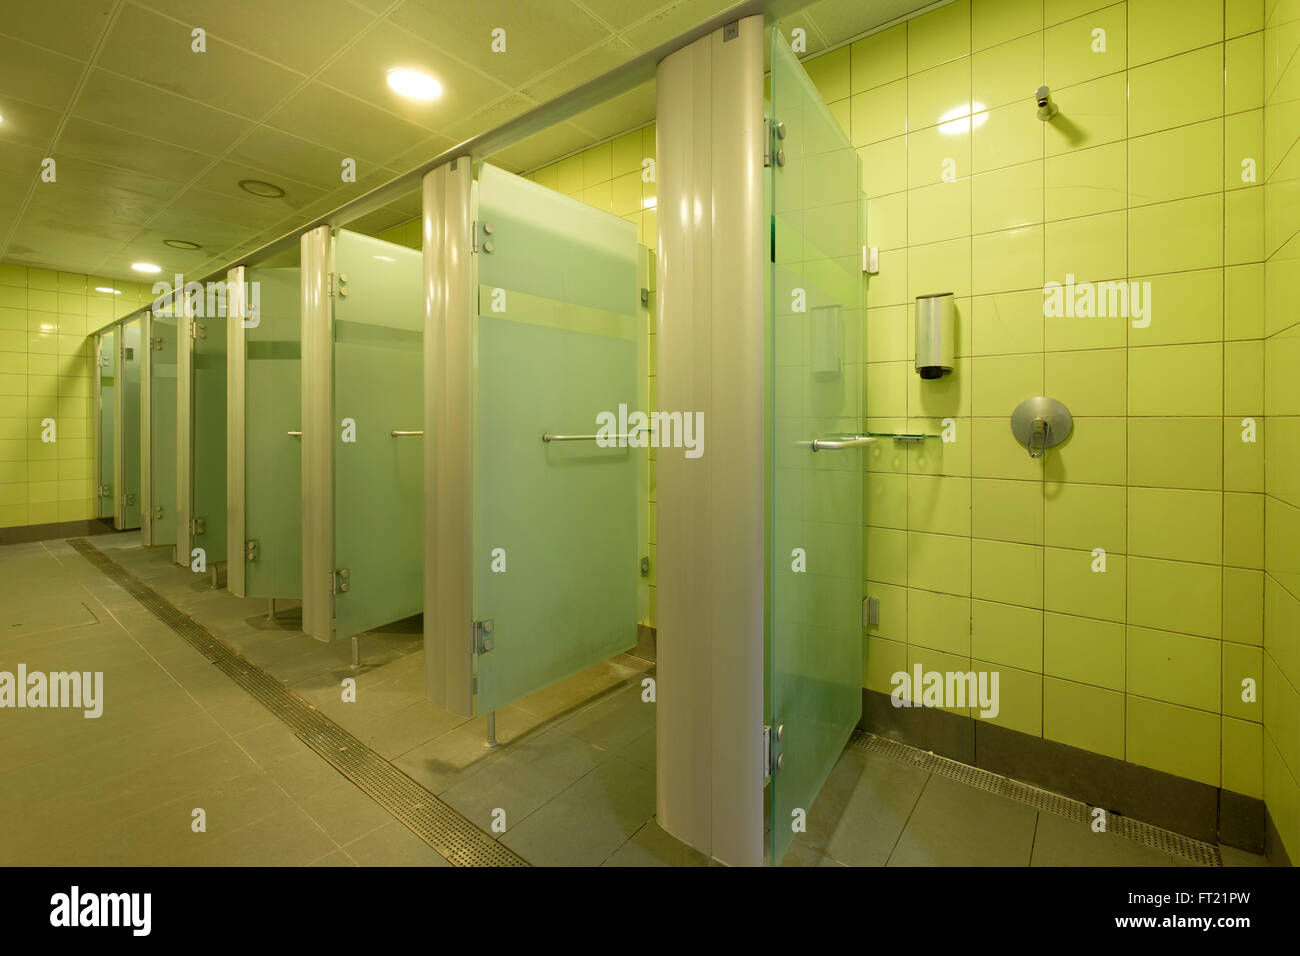 Shower cabins at the gym stock photo royalty free image